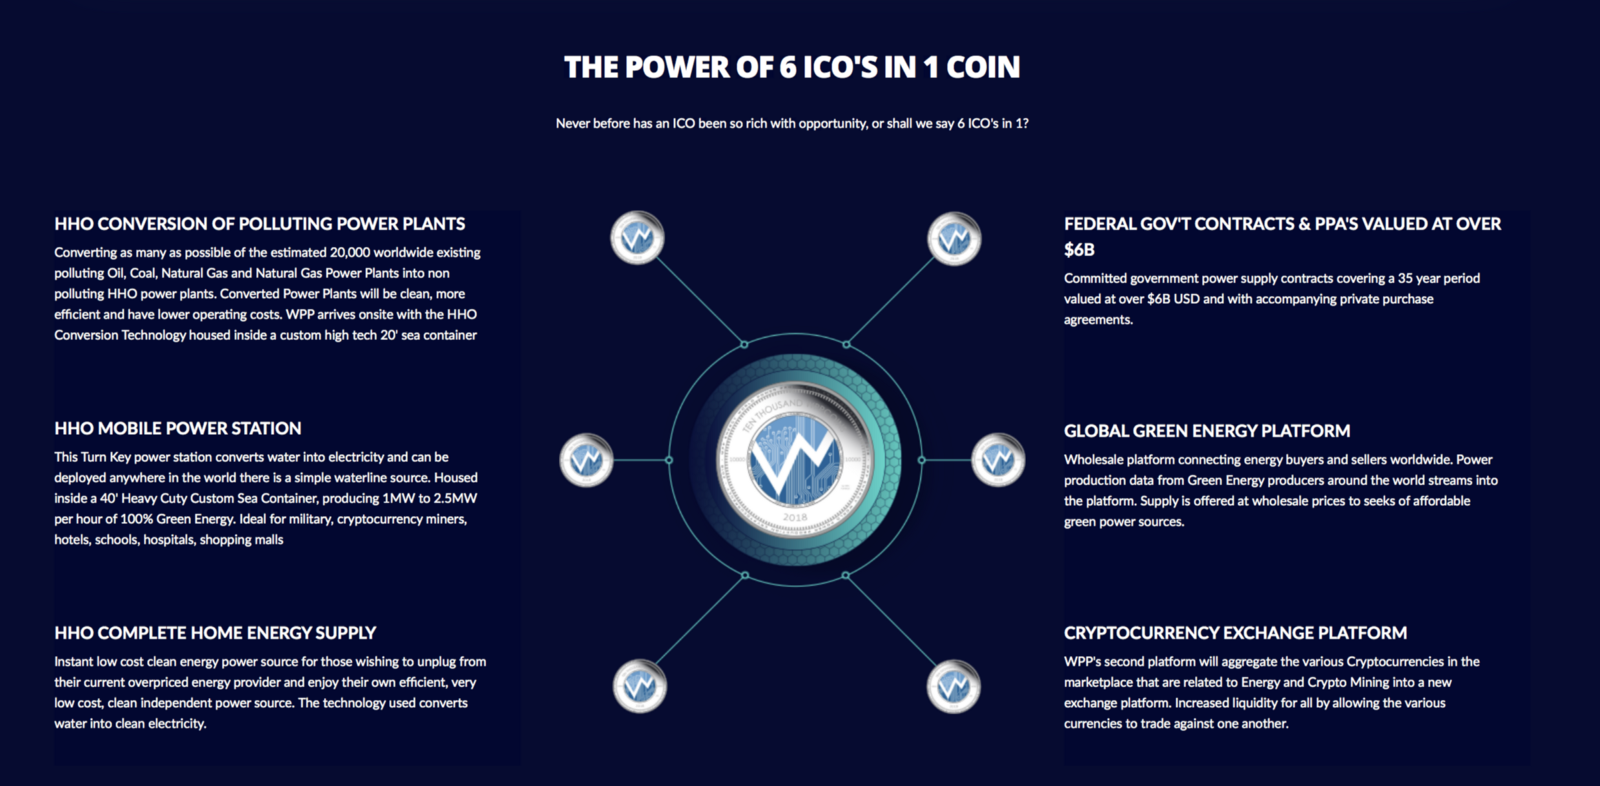 Green Energy Blockchain Ico Wpp Medium Oil Power Plant Diagram An Innovative Decentralised Renewable Trading Platform And So Much More From A Visionary Private Company With Over 5b In Government